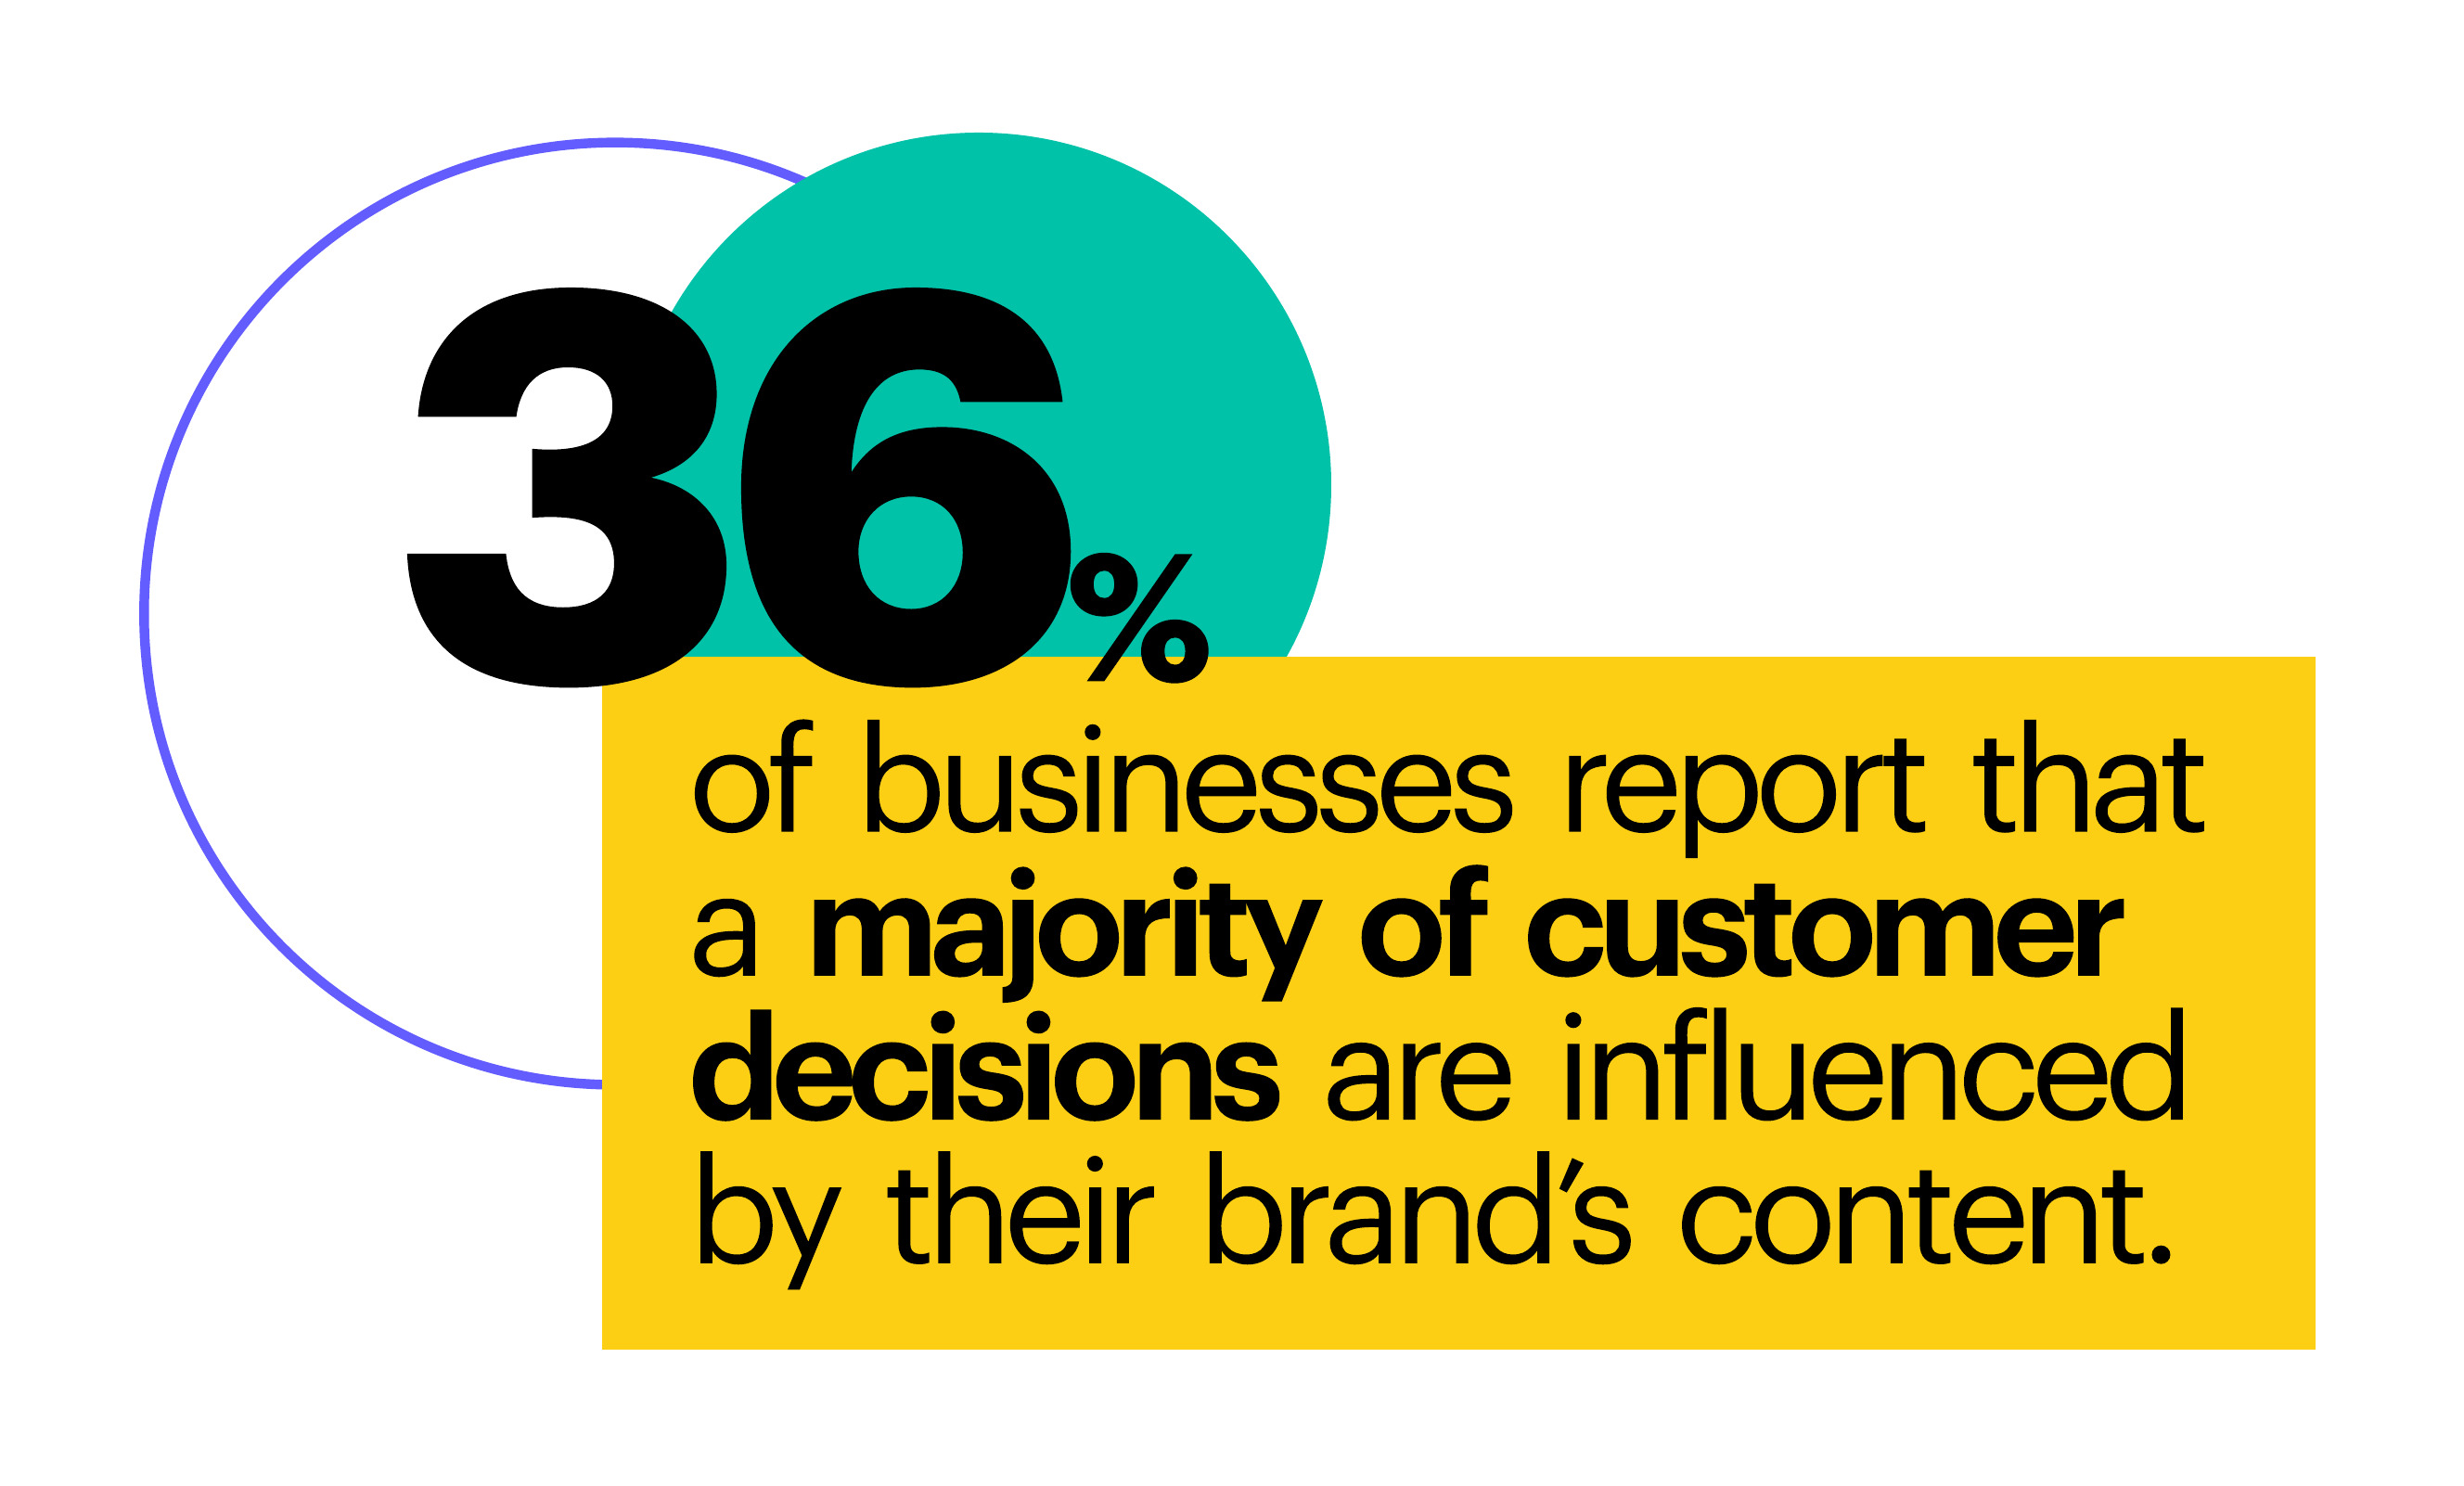 36% of businesses report that a majority of customer decisions are influenced by their brand's content.